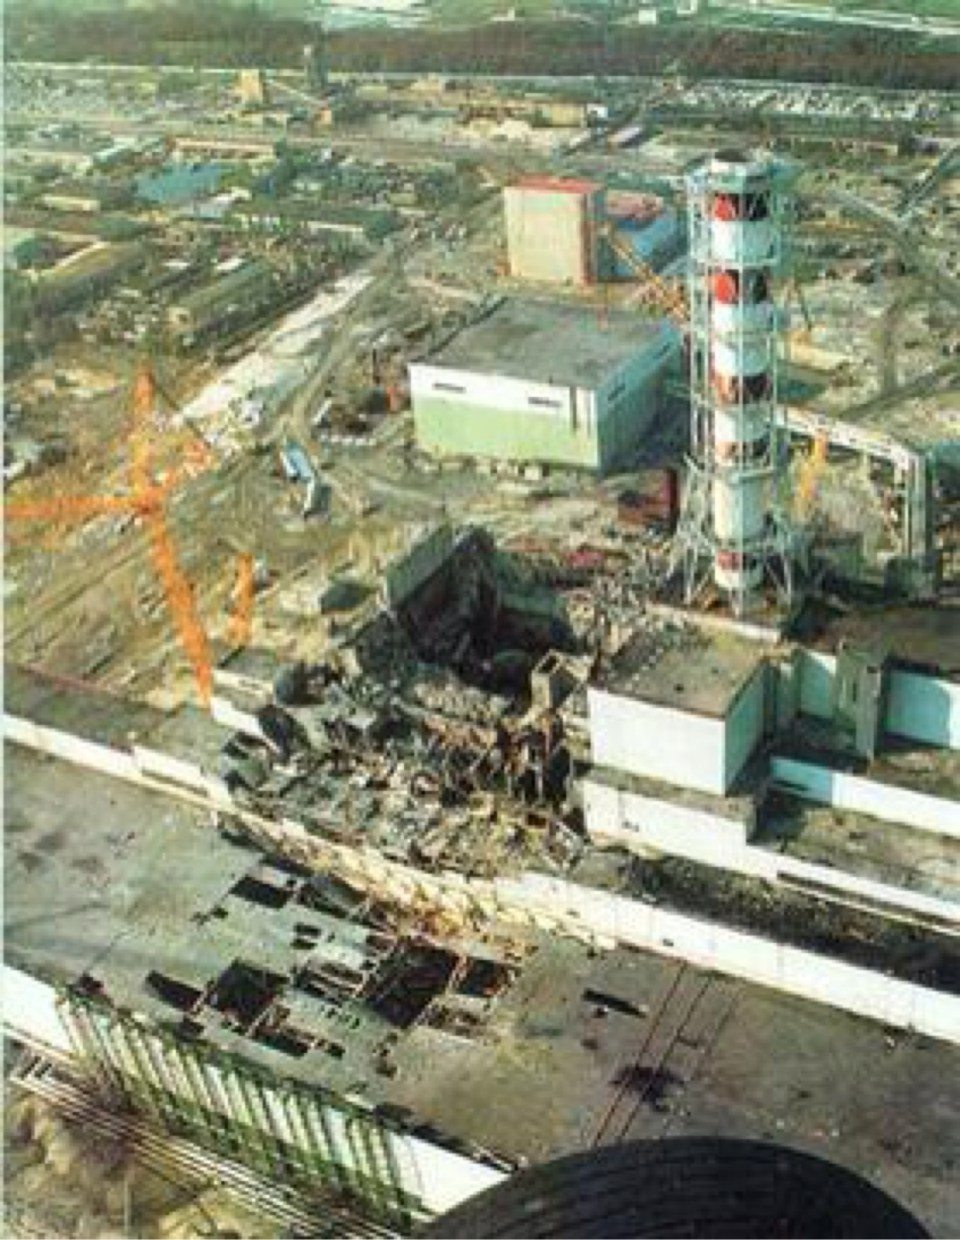 No.4 reactor at the Chornobyl Nuclear Power Plant shortly after the 26 April 1986 disaster.